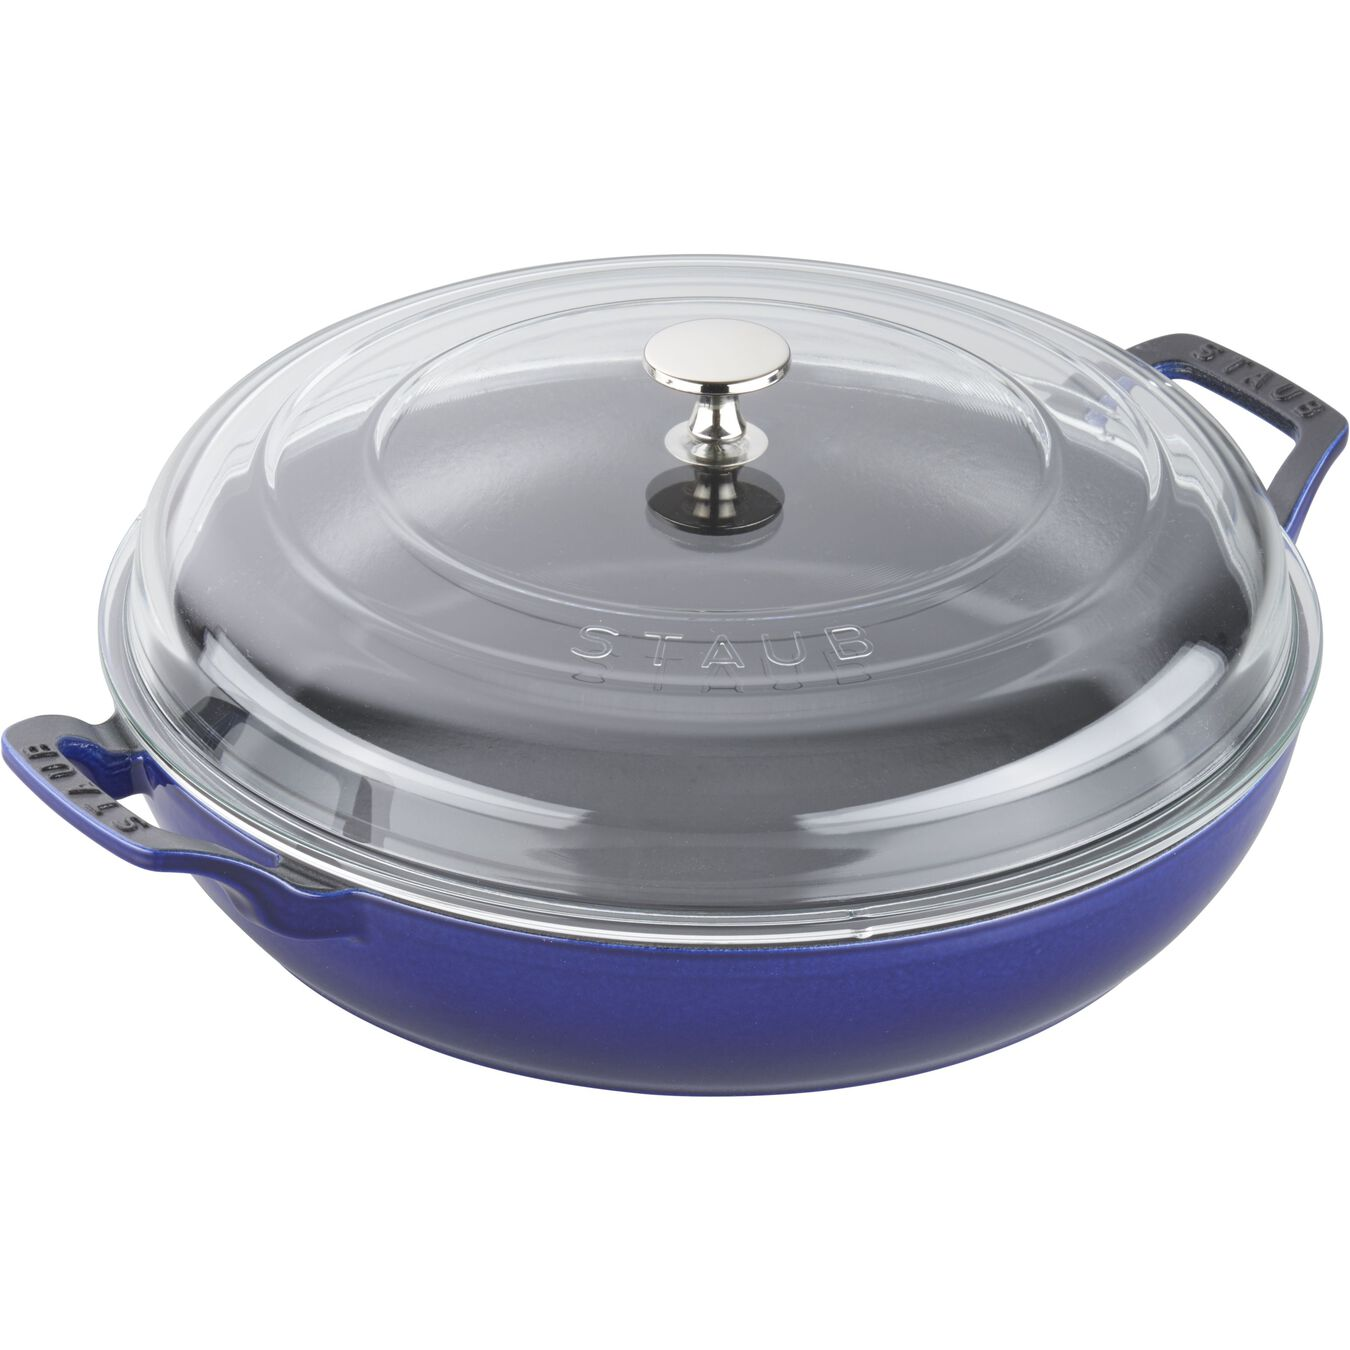 12-inch, Saute pan with glass lid, dark blue,,large 3